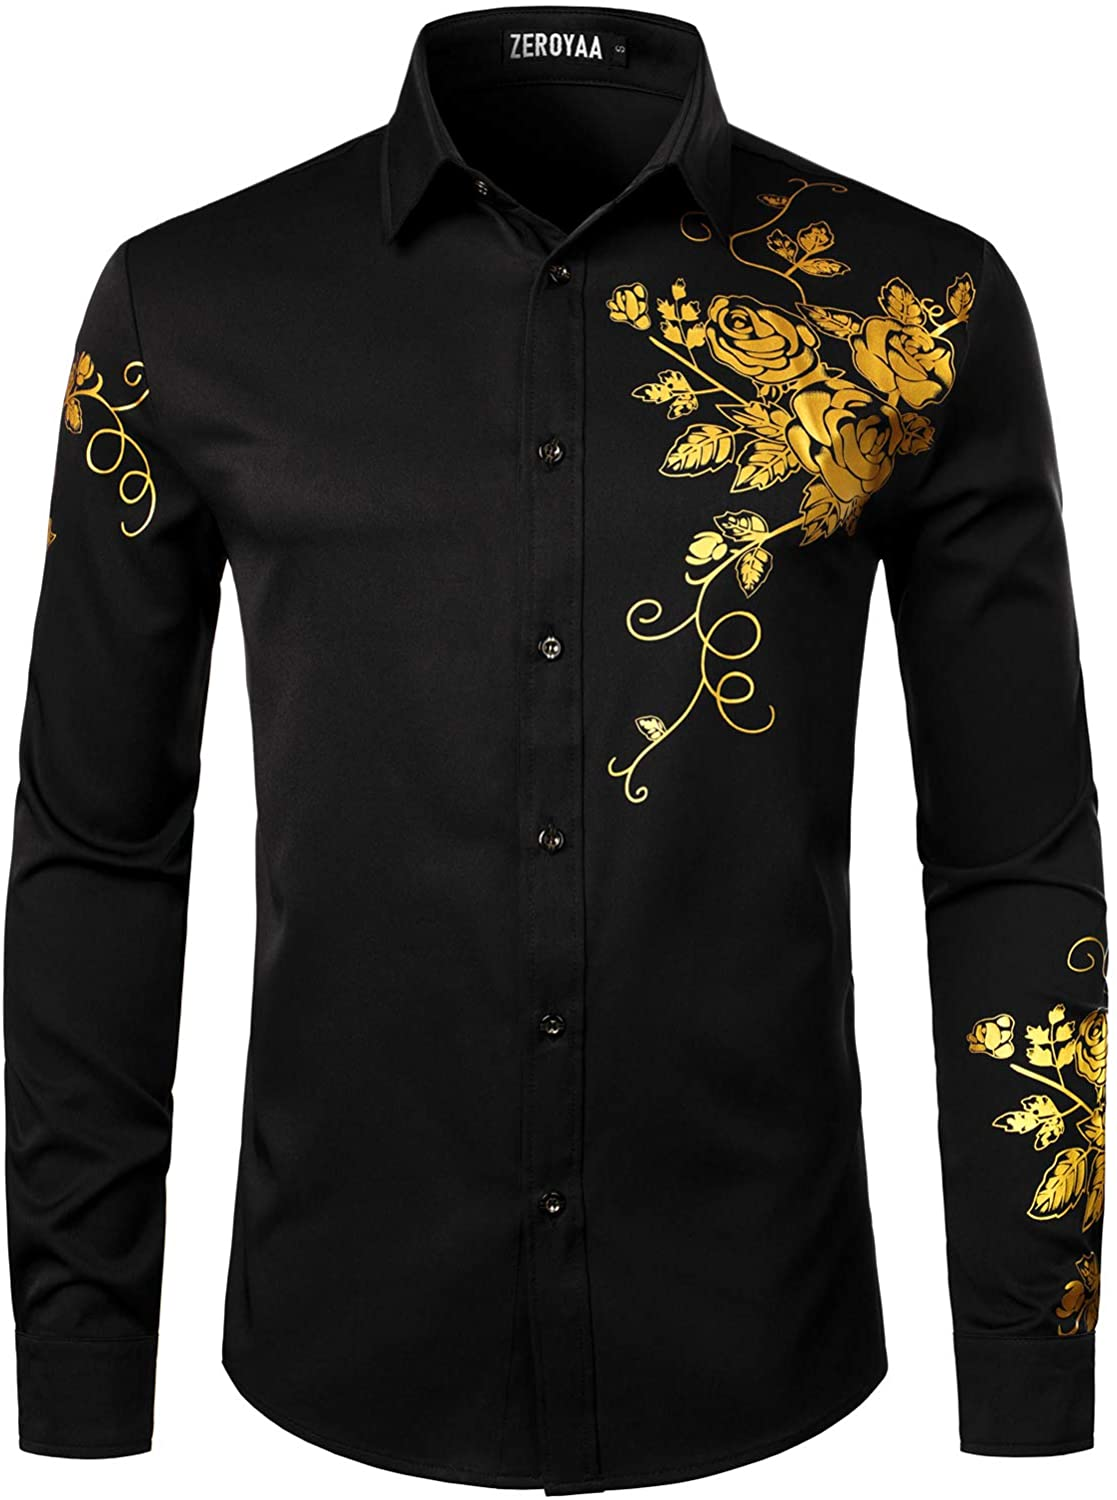 ZEROYAA Men's Hipster Rose Floral Printed Slim Fit Long Sleeve Button Up Party Dress Shirts